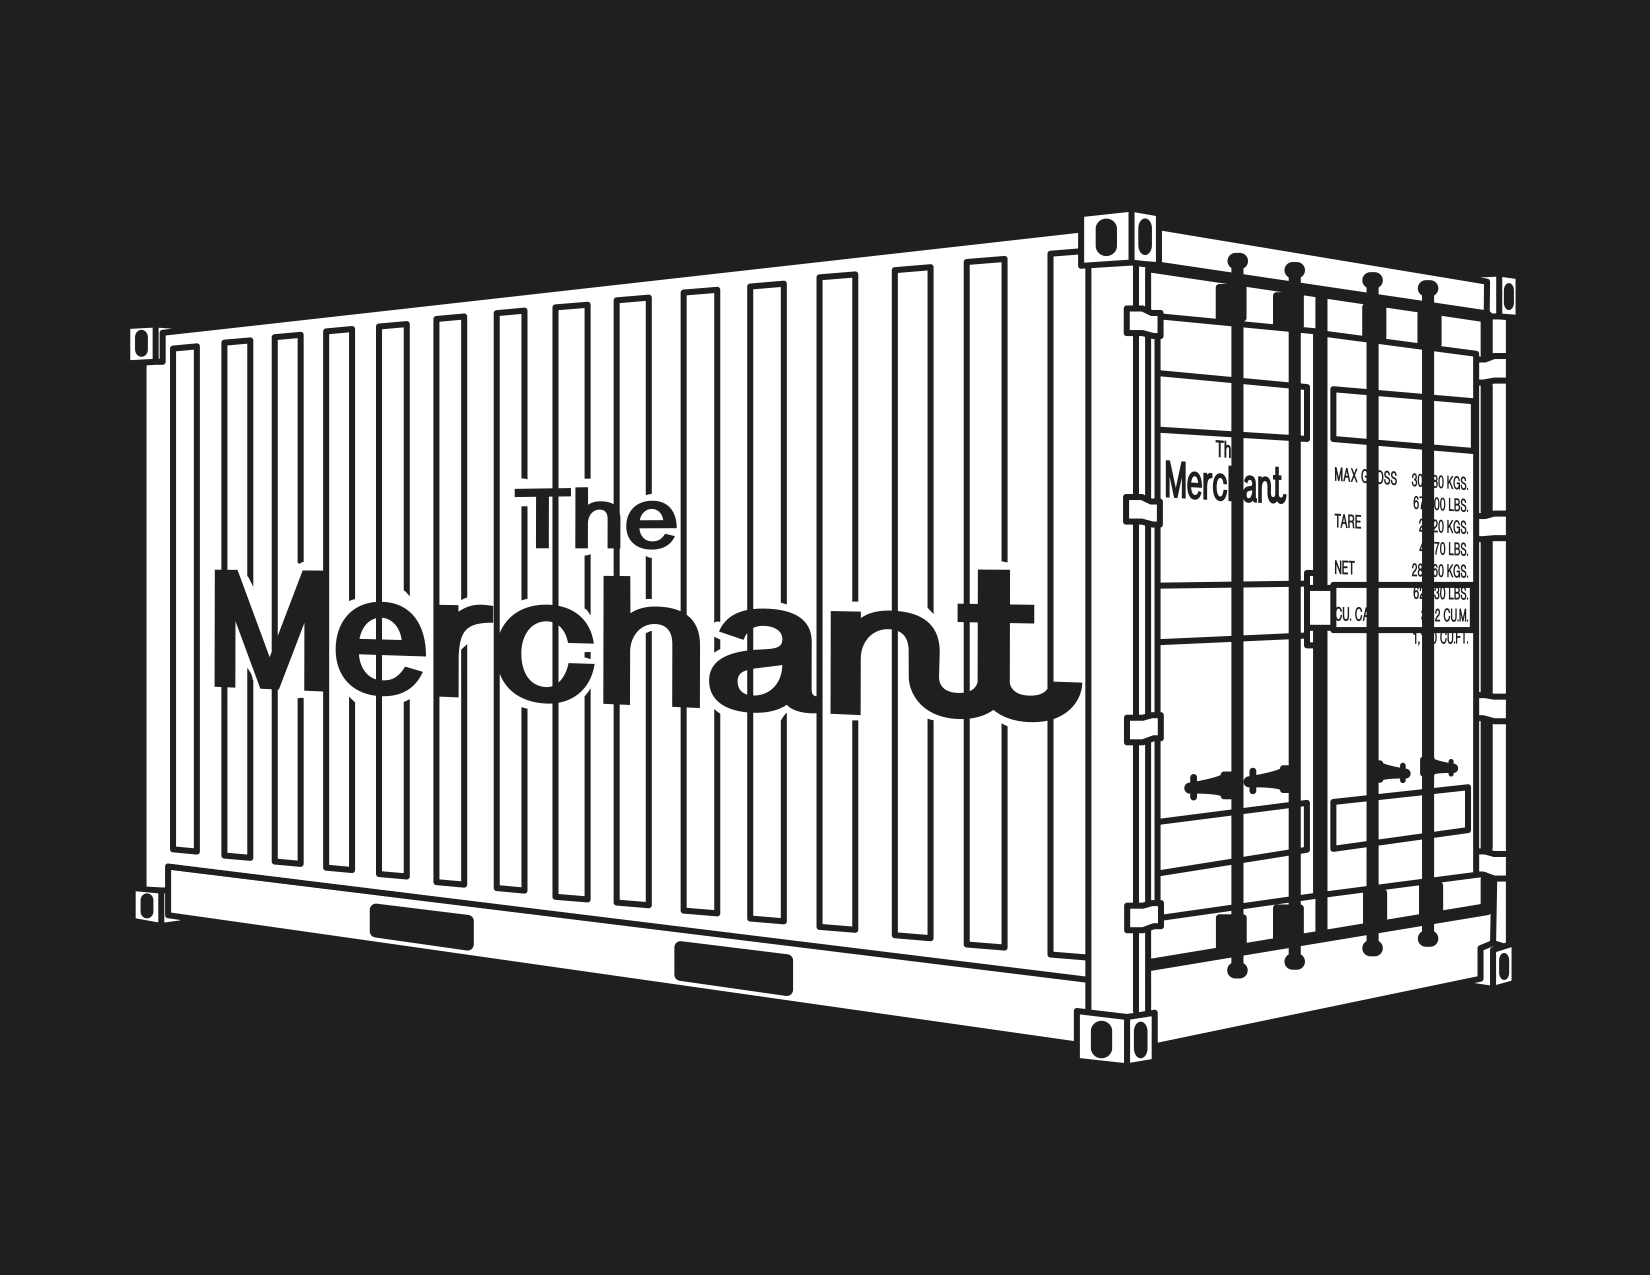 Shipping Container - The Merchant FINAL.png